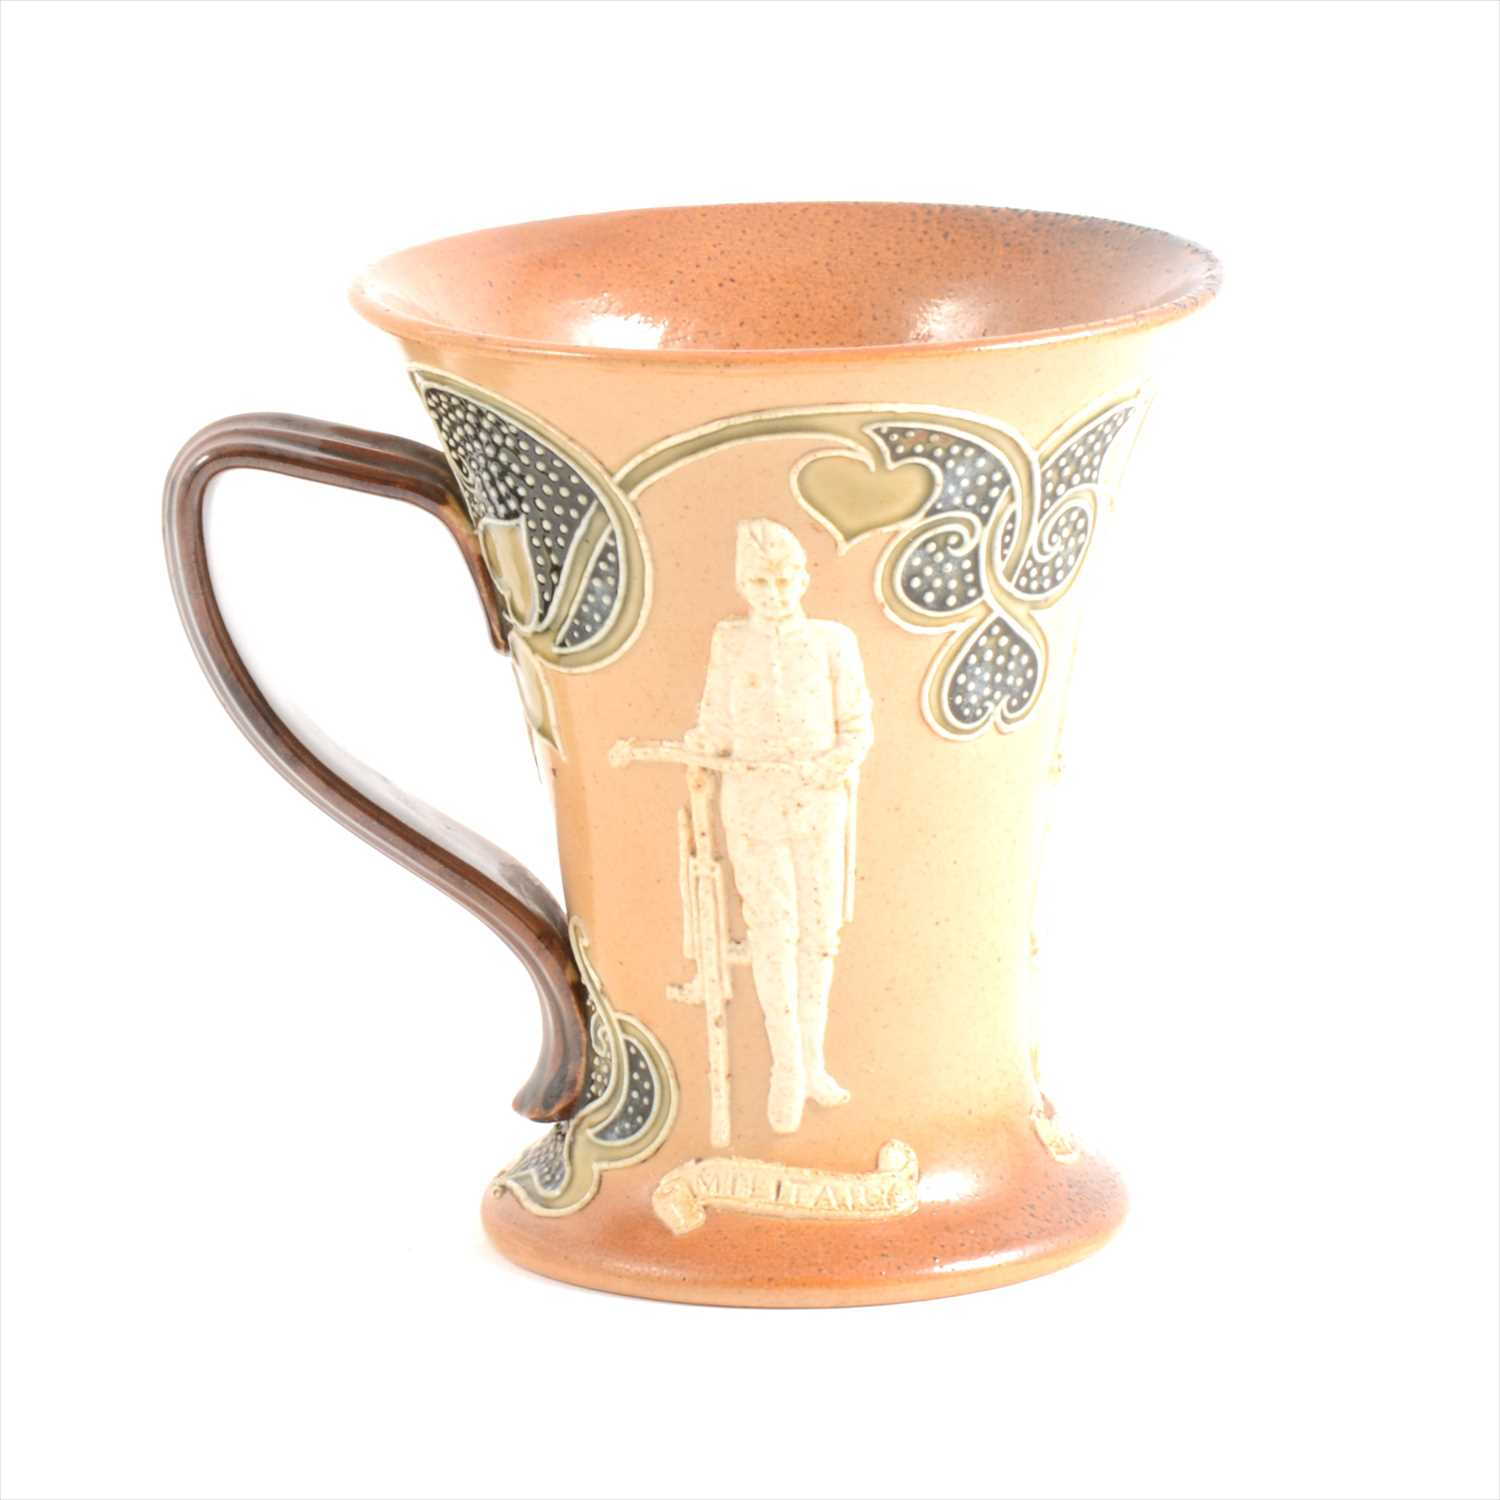 Lot 8-A Doulton Lambeth stoneware mug - Military, Road, Path Cyclists- by John Broad